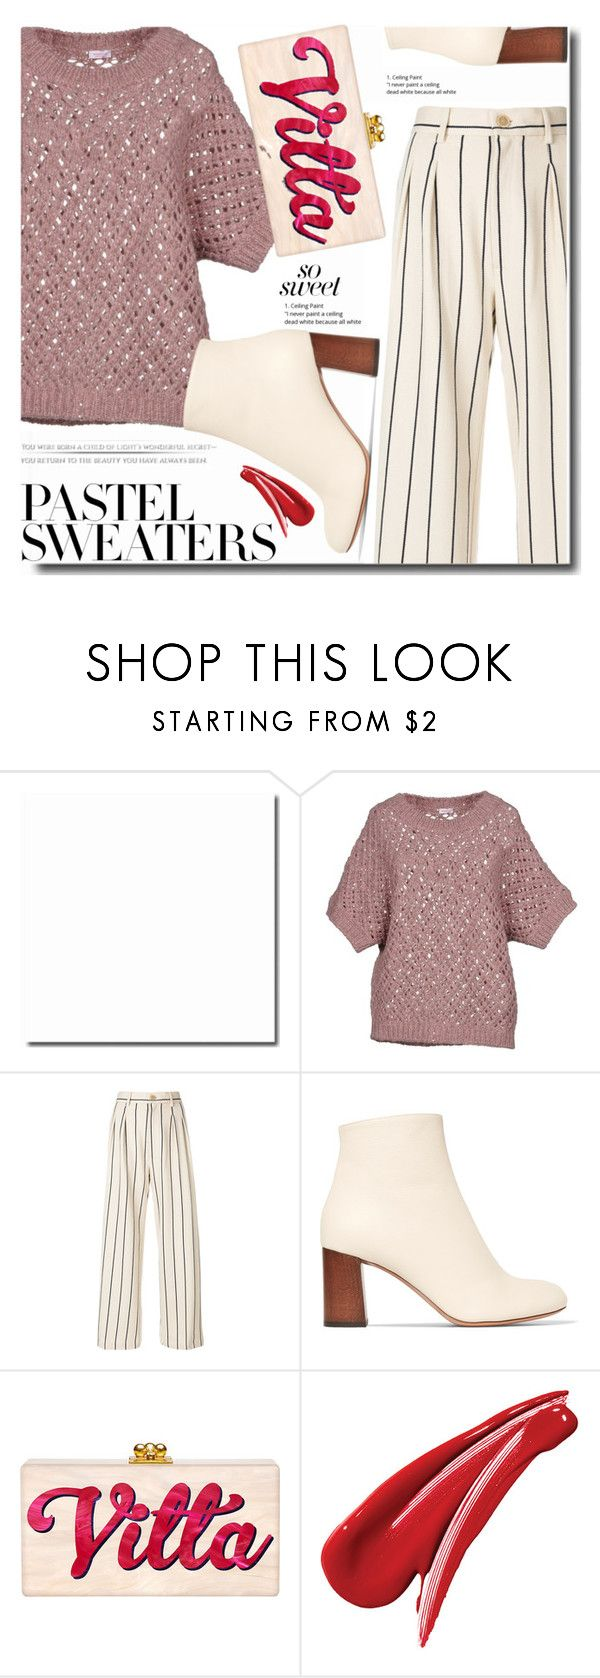 """""""Pastel Sweaters"""" by soks on Polyvore featuring Rossopuro, Erika Cavallini Semi-Couture, Chloé and pastelsweaters"""